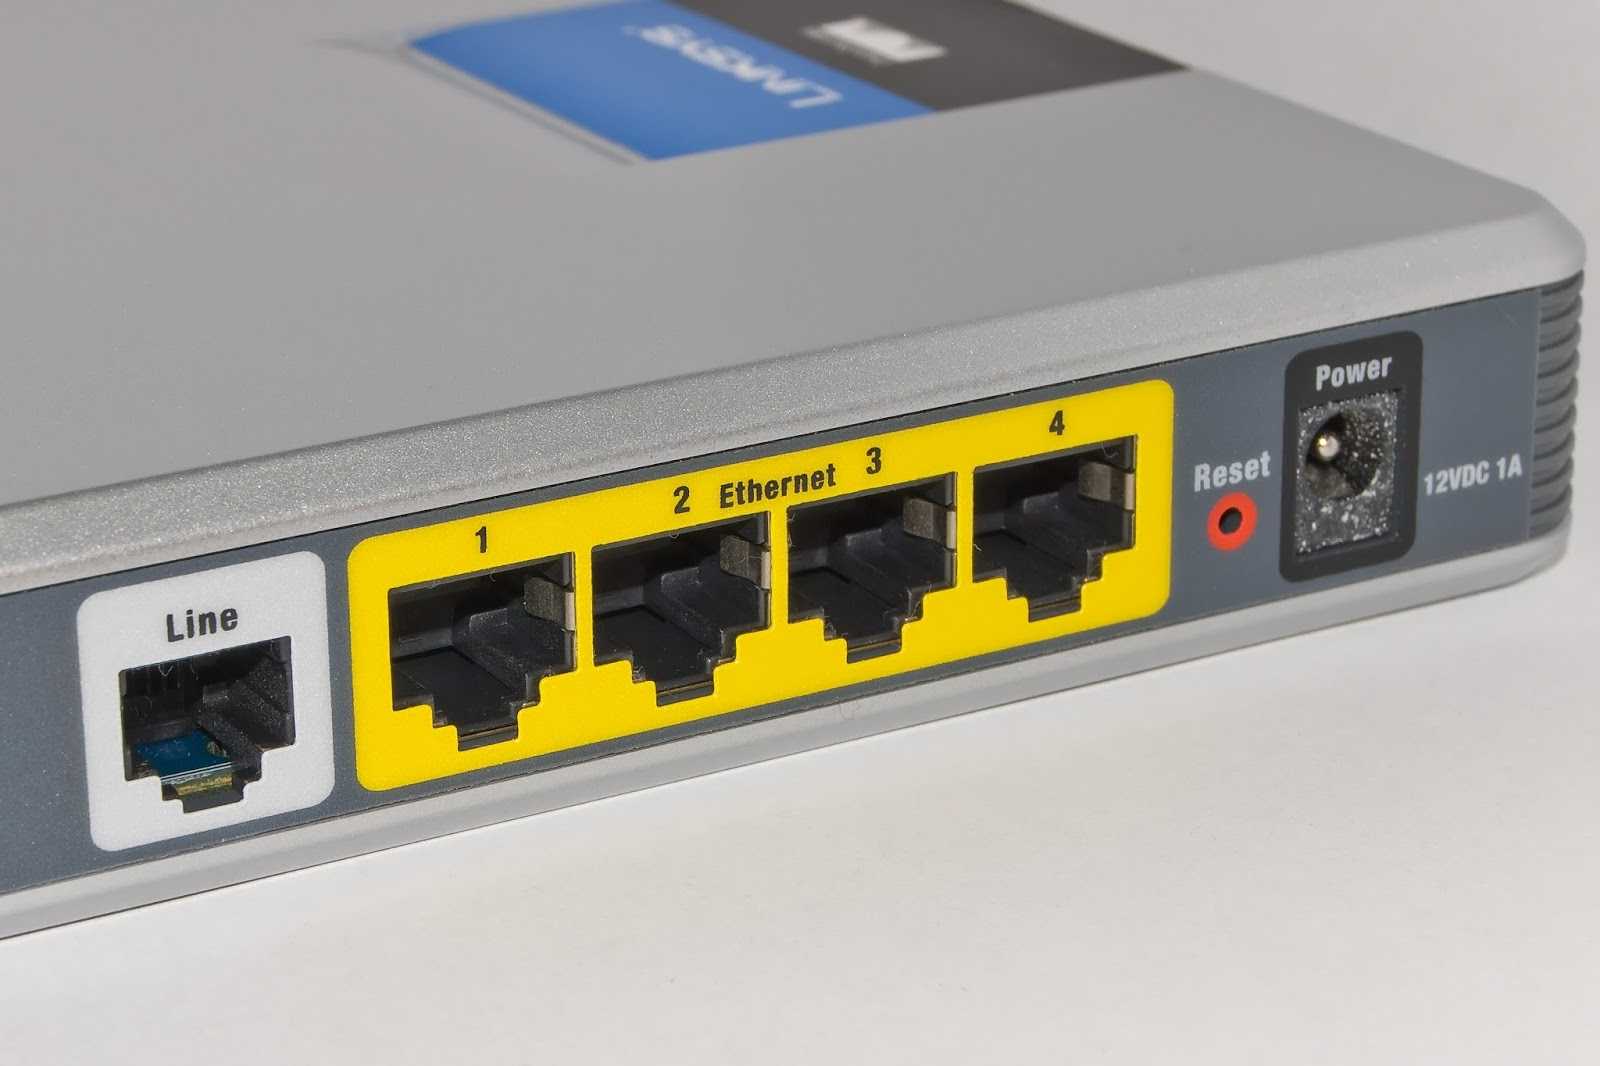 ethernetswitchingmodes Lan mode is used for connecting a wired computer's ethernet port (or a switch connected to several computers) into to the cradlepoint mbr1400 or mbr1200b wan mode: wan mode is used for connecting a wired wan source (dsl, cable, satellite, etc) to provide an internet connection to the cradlepoint mbr1400 or mbr1200b.